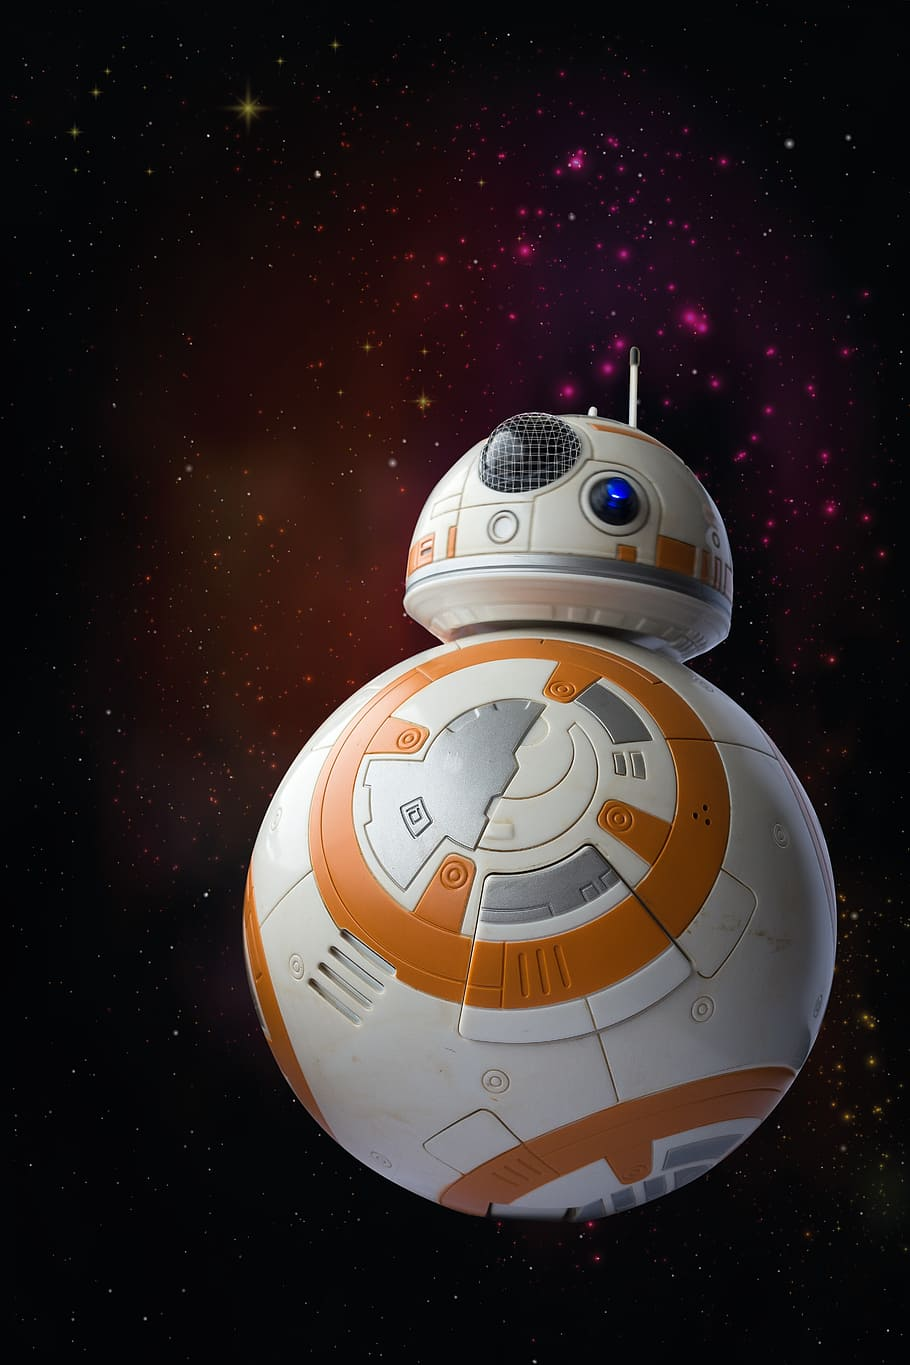 113 1137793 bb 8 from star wars movie bb8 droid